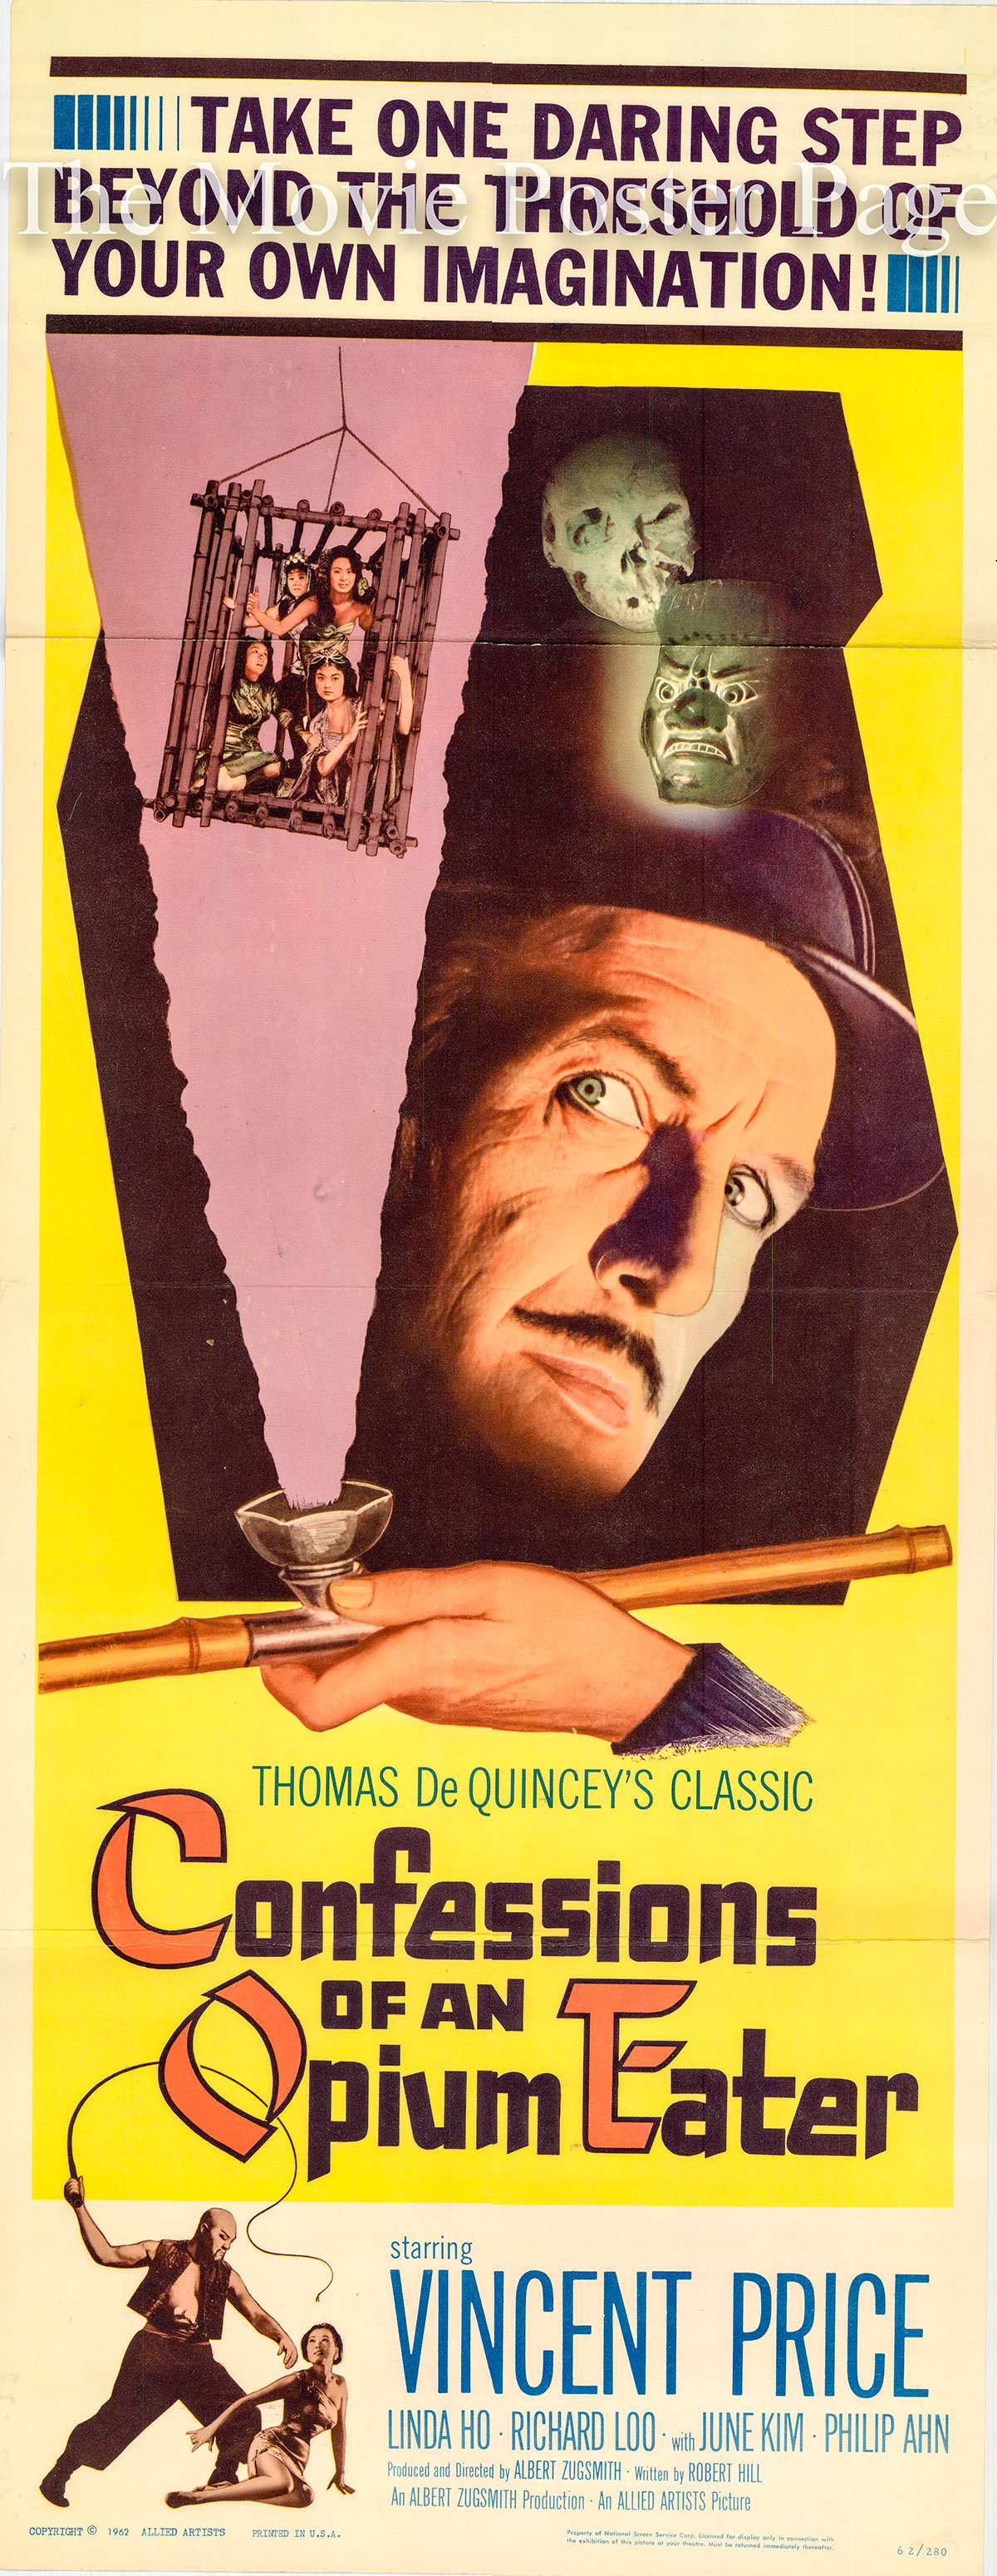 Pictured is the US insert promotional poster for the 1962 Albert Zugsmith film Confessions of an Opium Eater starring Vincent Price.